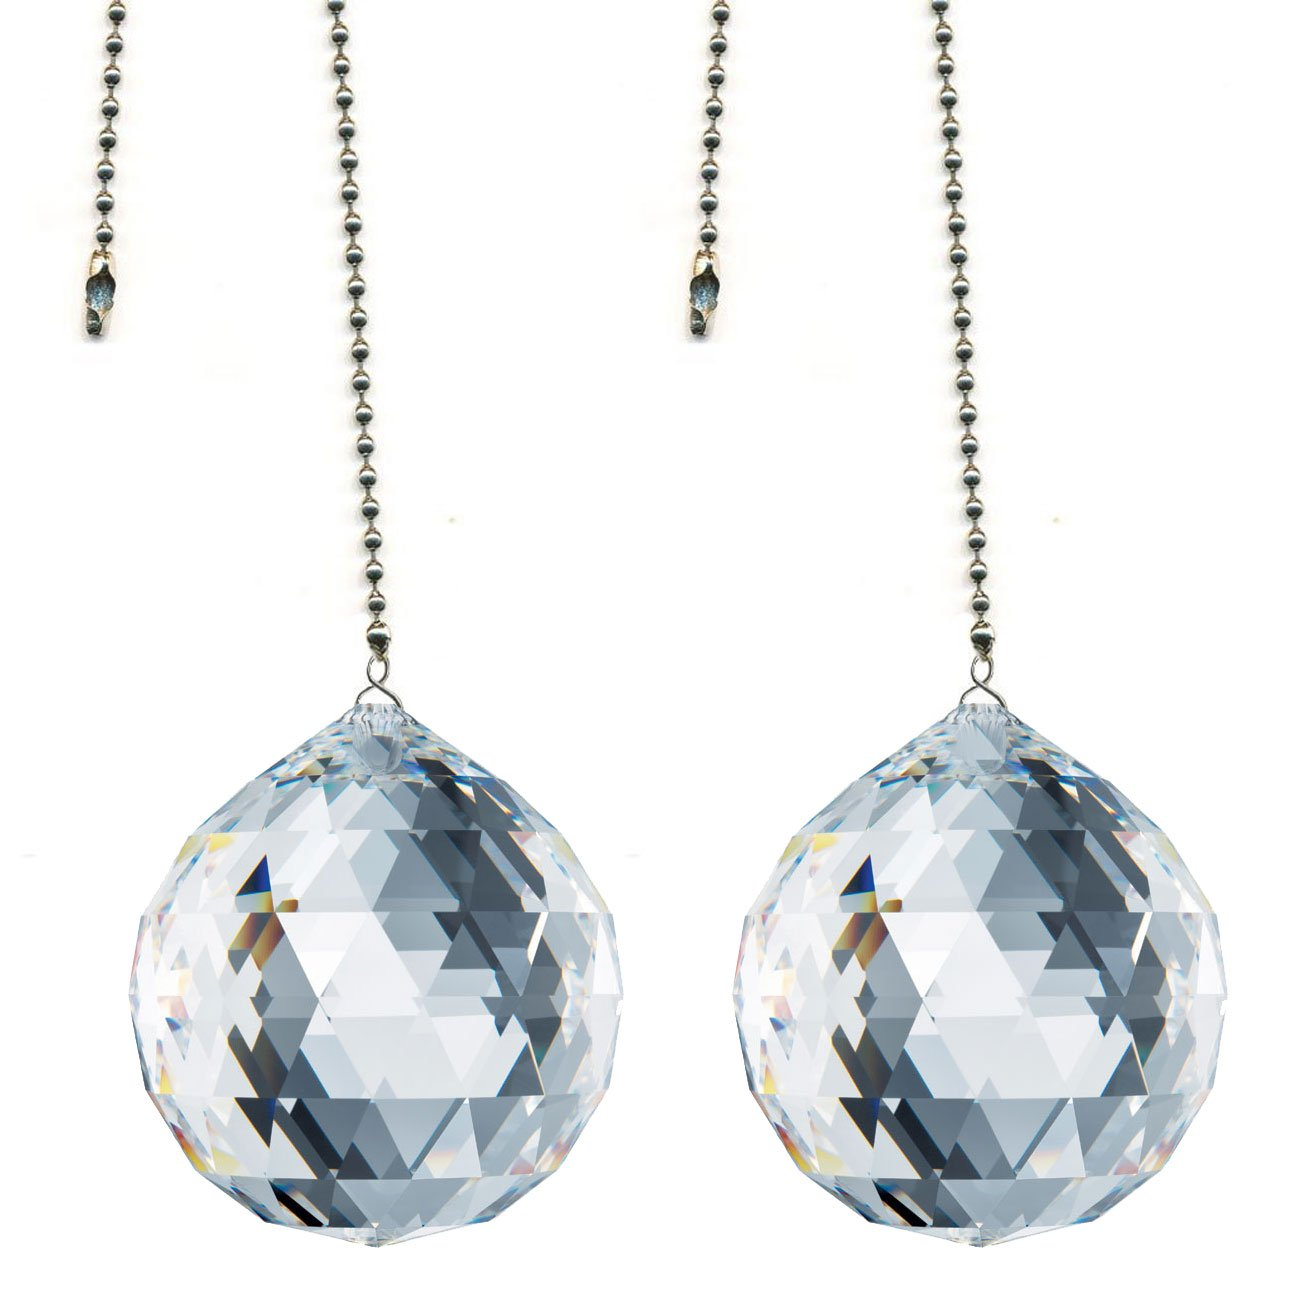 CrystalPlace Ceiling Fan Pull Chain 30mm Swarovski Strass Clear Faceted Ball Prism Decorative Rainbow Maker Fan Pulley Set of 2 by CrystalPlace